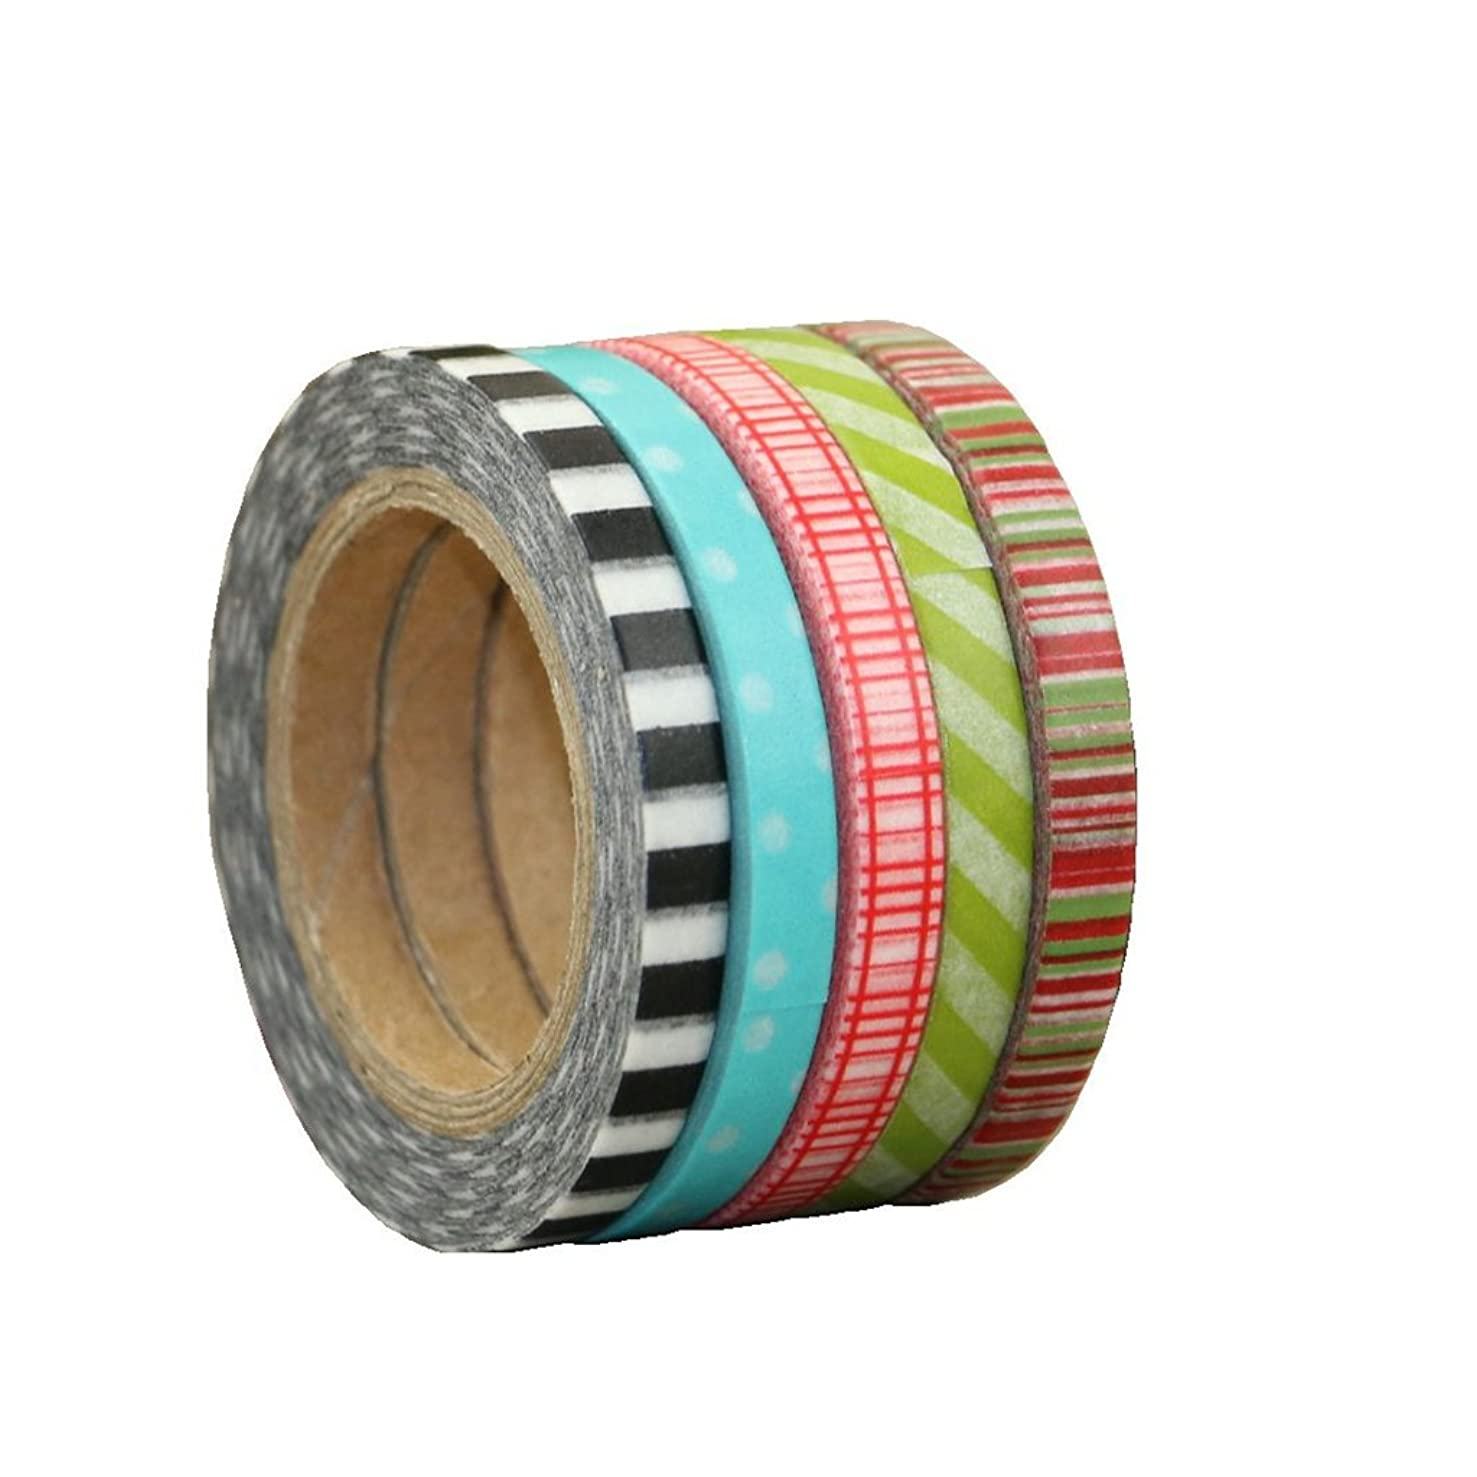 Washi Masking tape set of 5 rolls,5MM X 10M Decorative Masking Tape Collection,Tape for DIY Crafts and Gift Wrapping Office Party Supplies